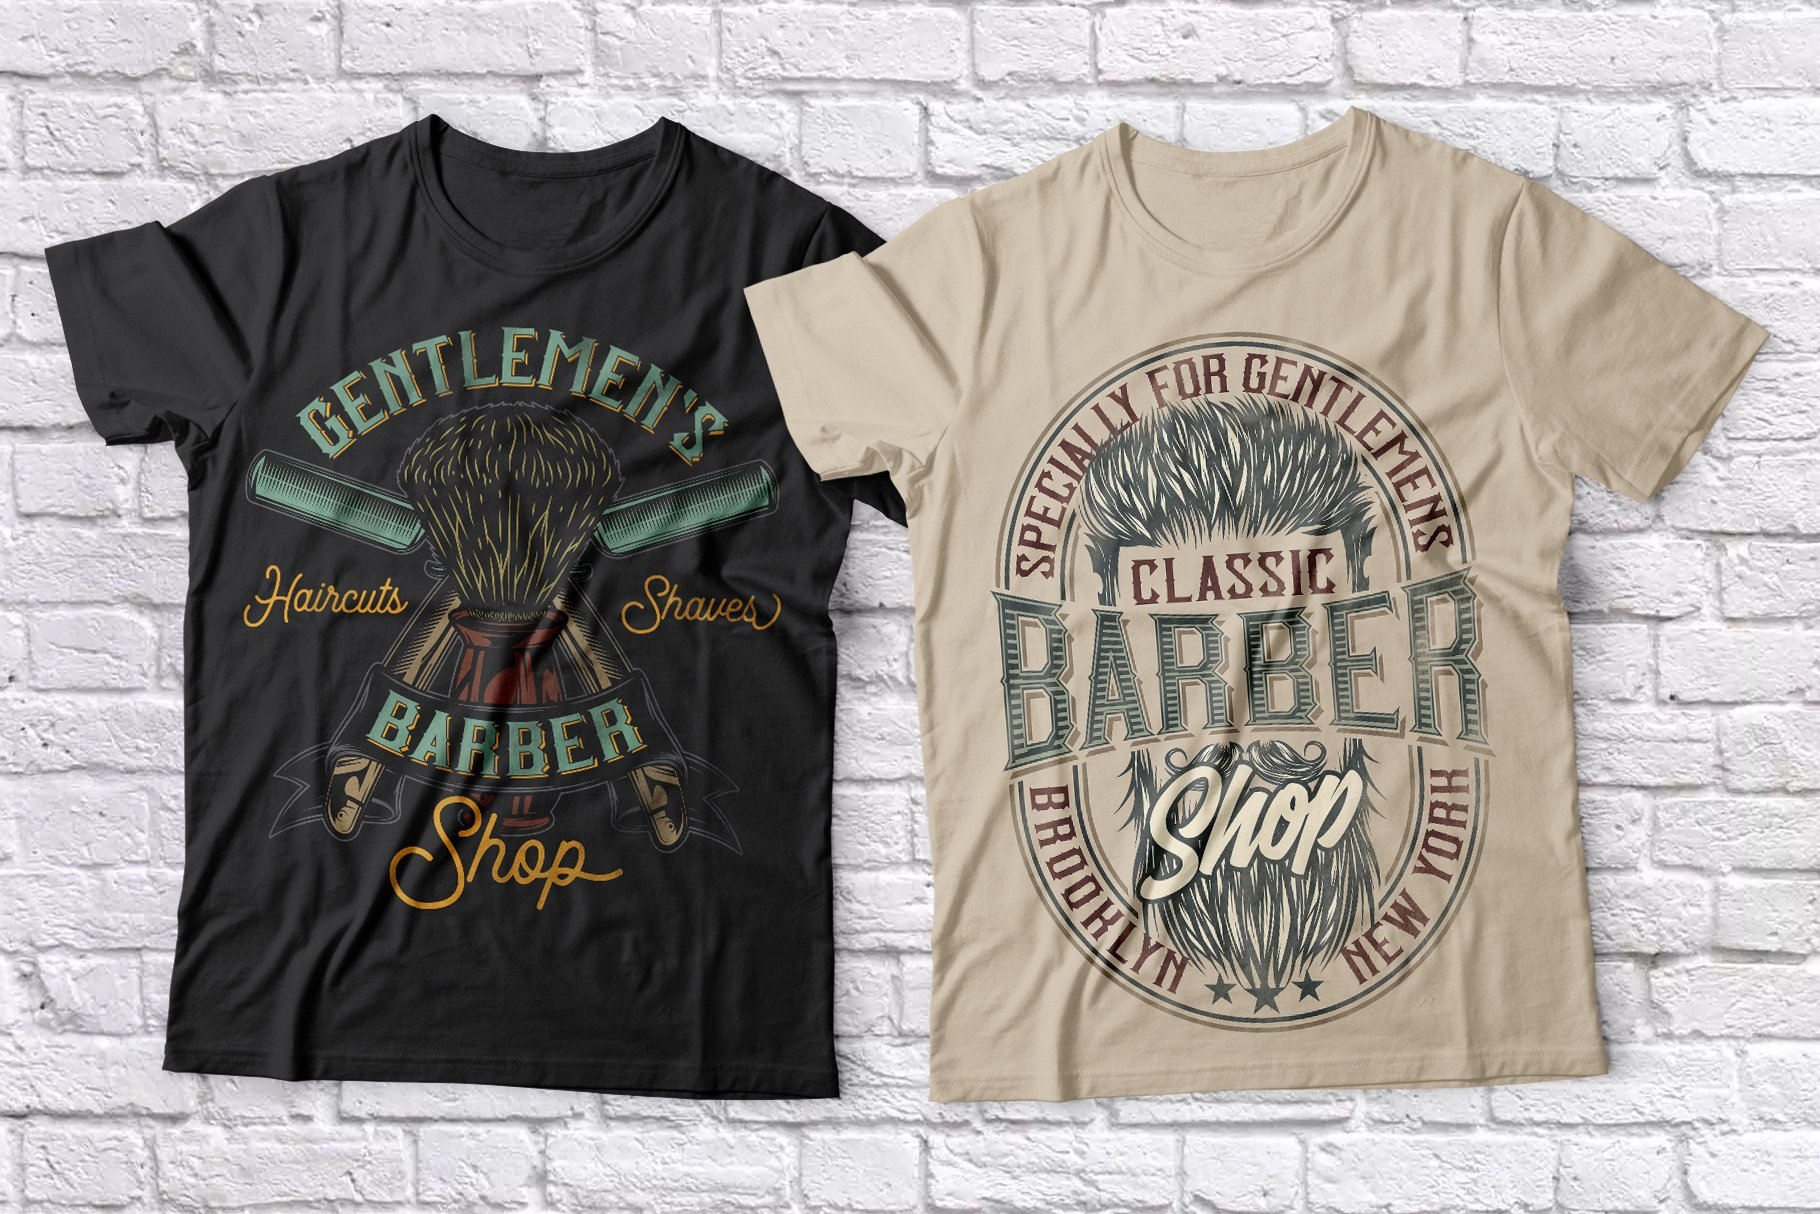 Black and beige T-shirts that show good men's hairstyles.